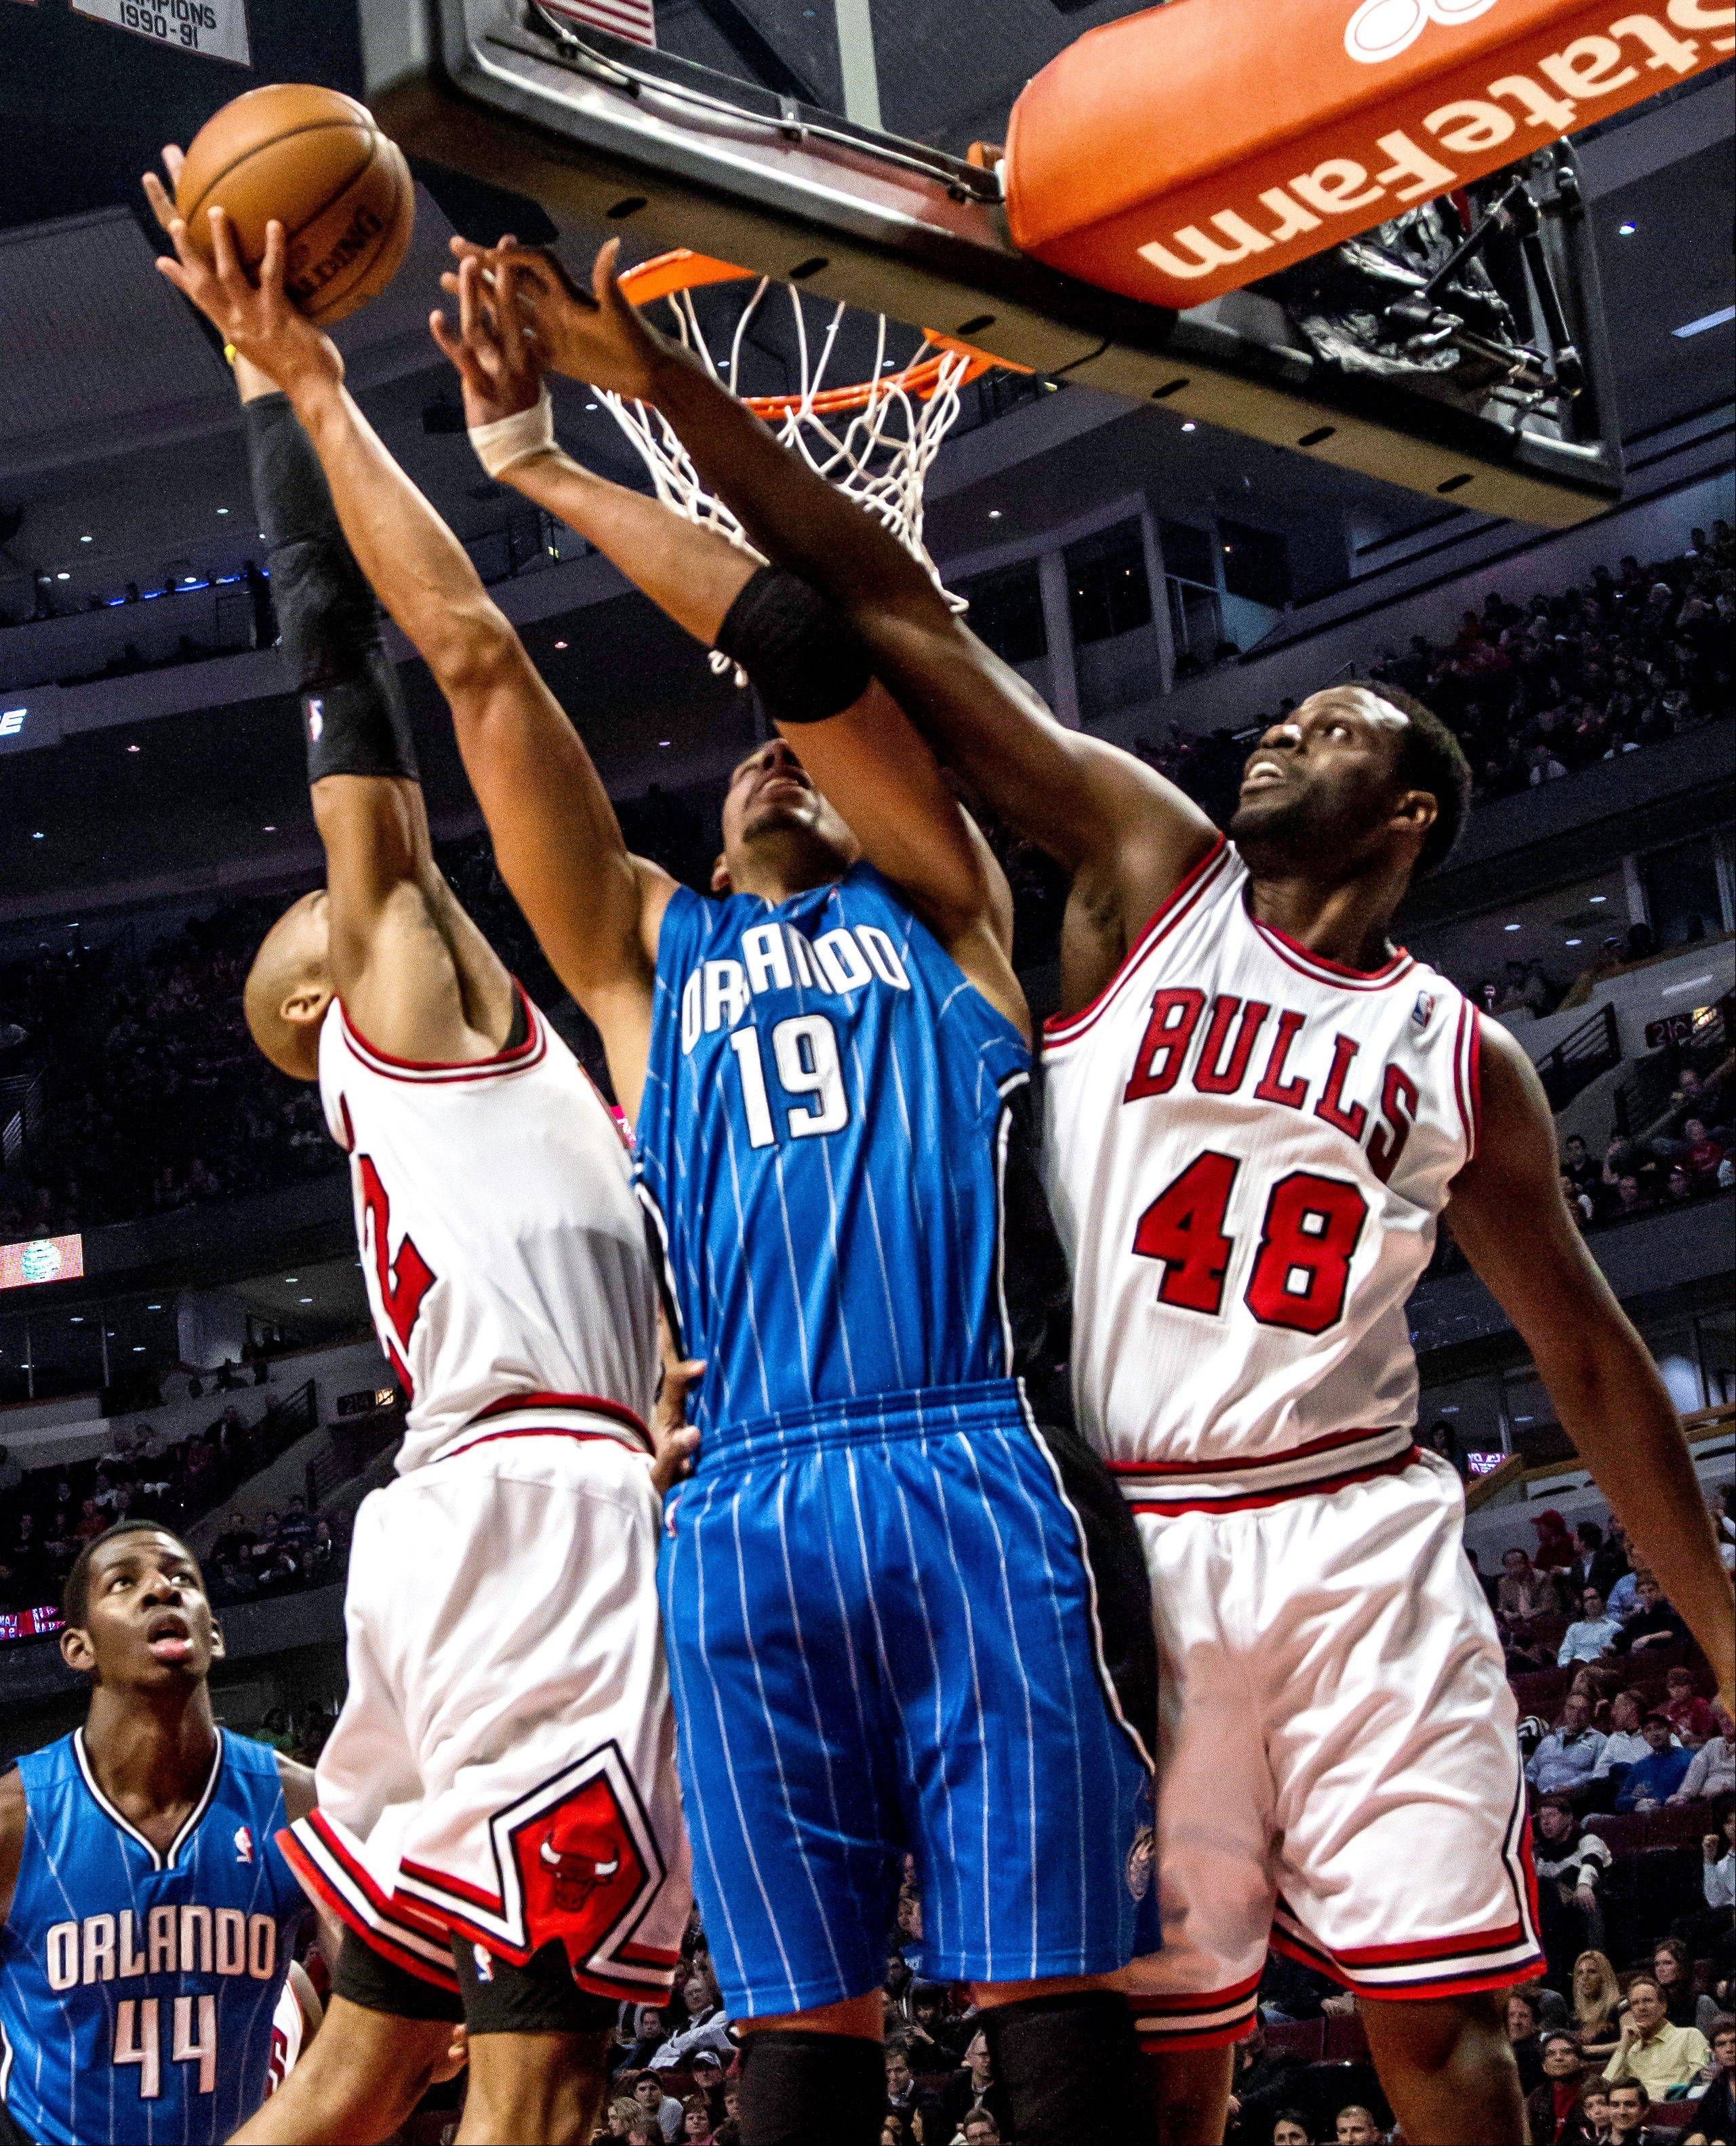 The Bulls' Taj Gibson (22) and Nazr Mohammed (48) put defensive pressure on Orlando's Gustavo Avon.